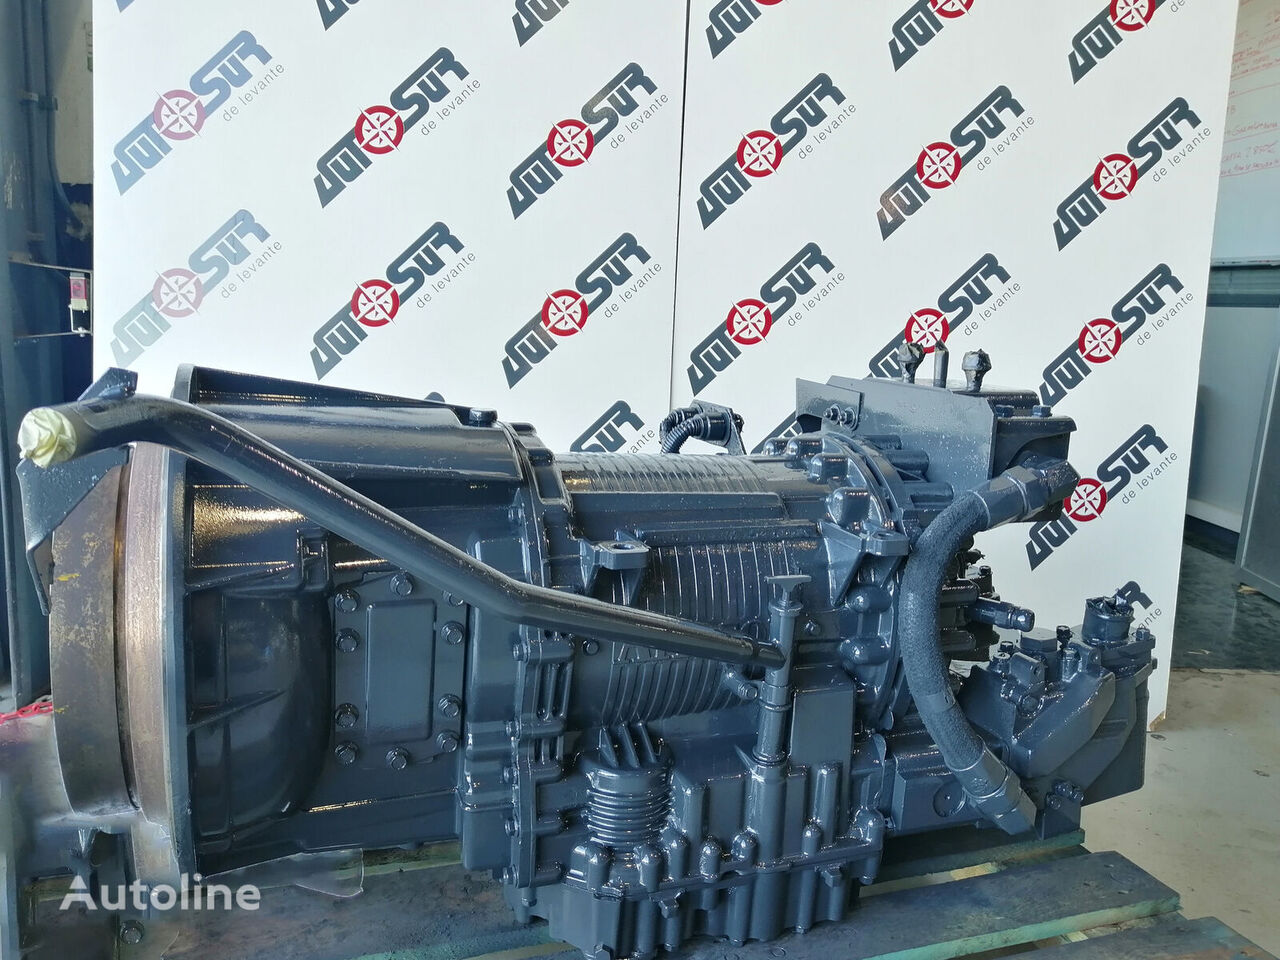 Allison S3000 (6520069336) gearbox for truck